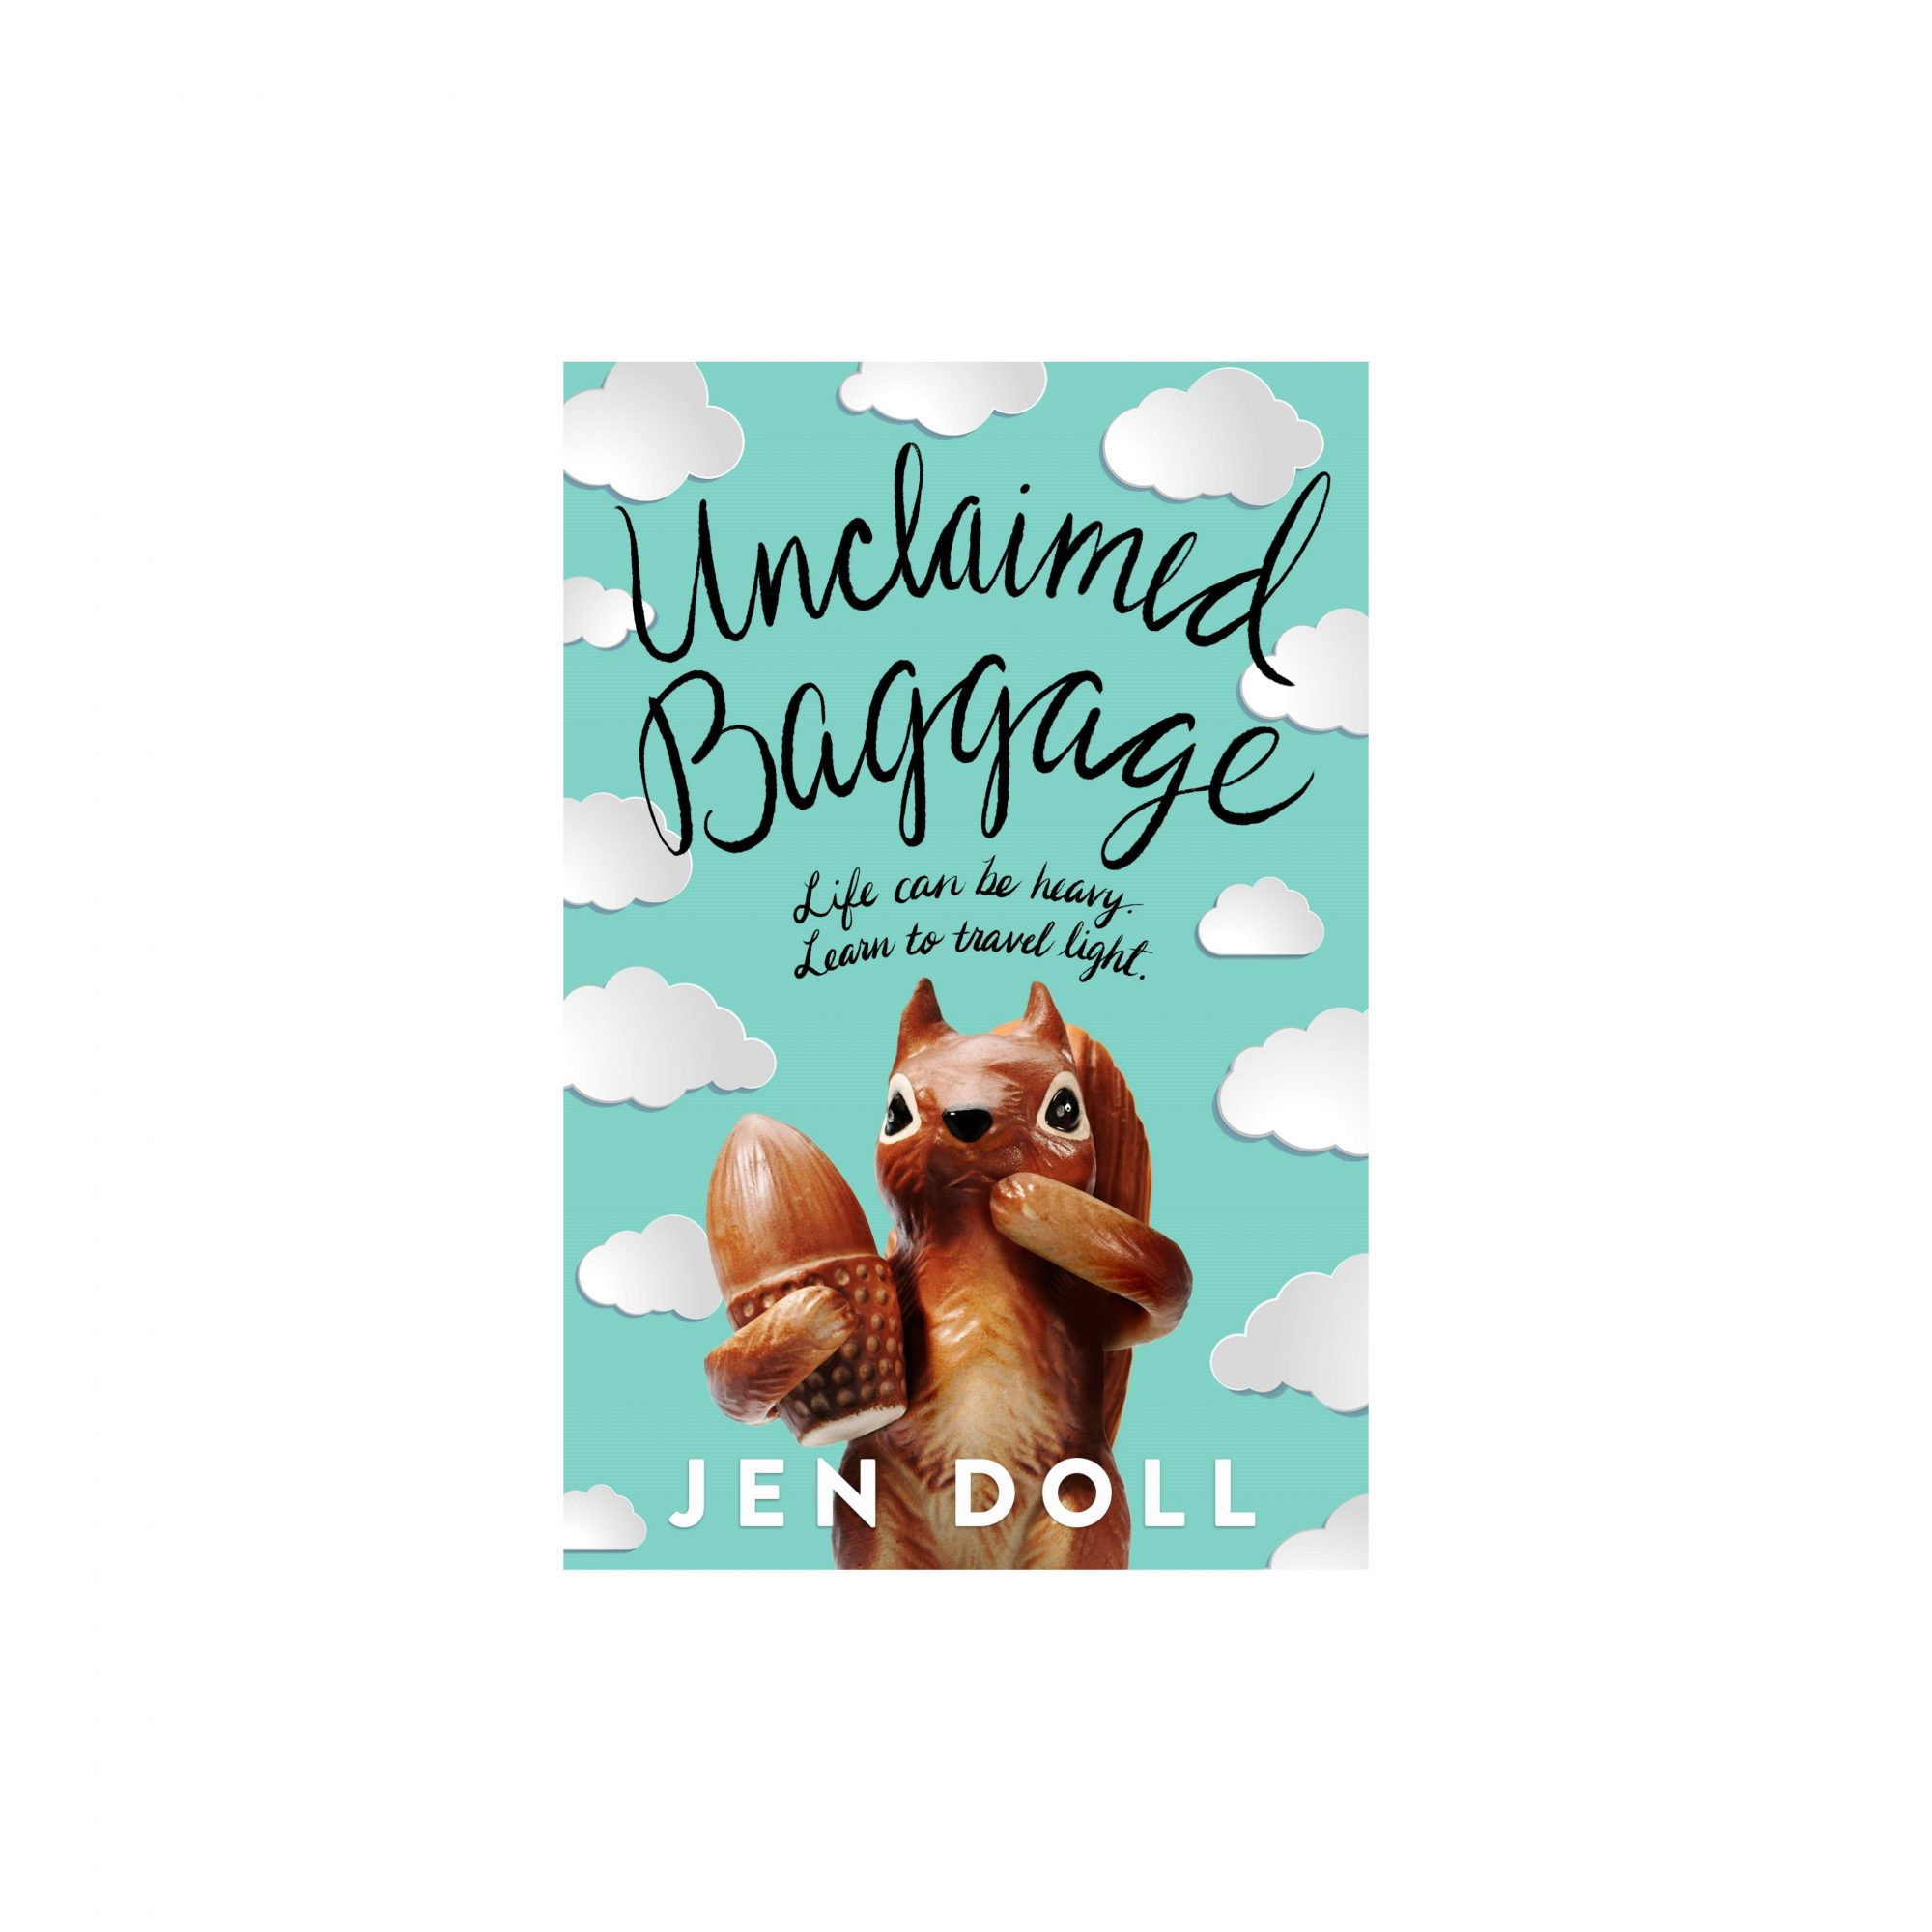 Unclaimed Baggage, by Jen Doll